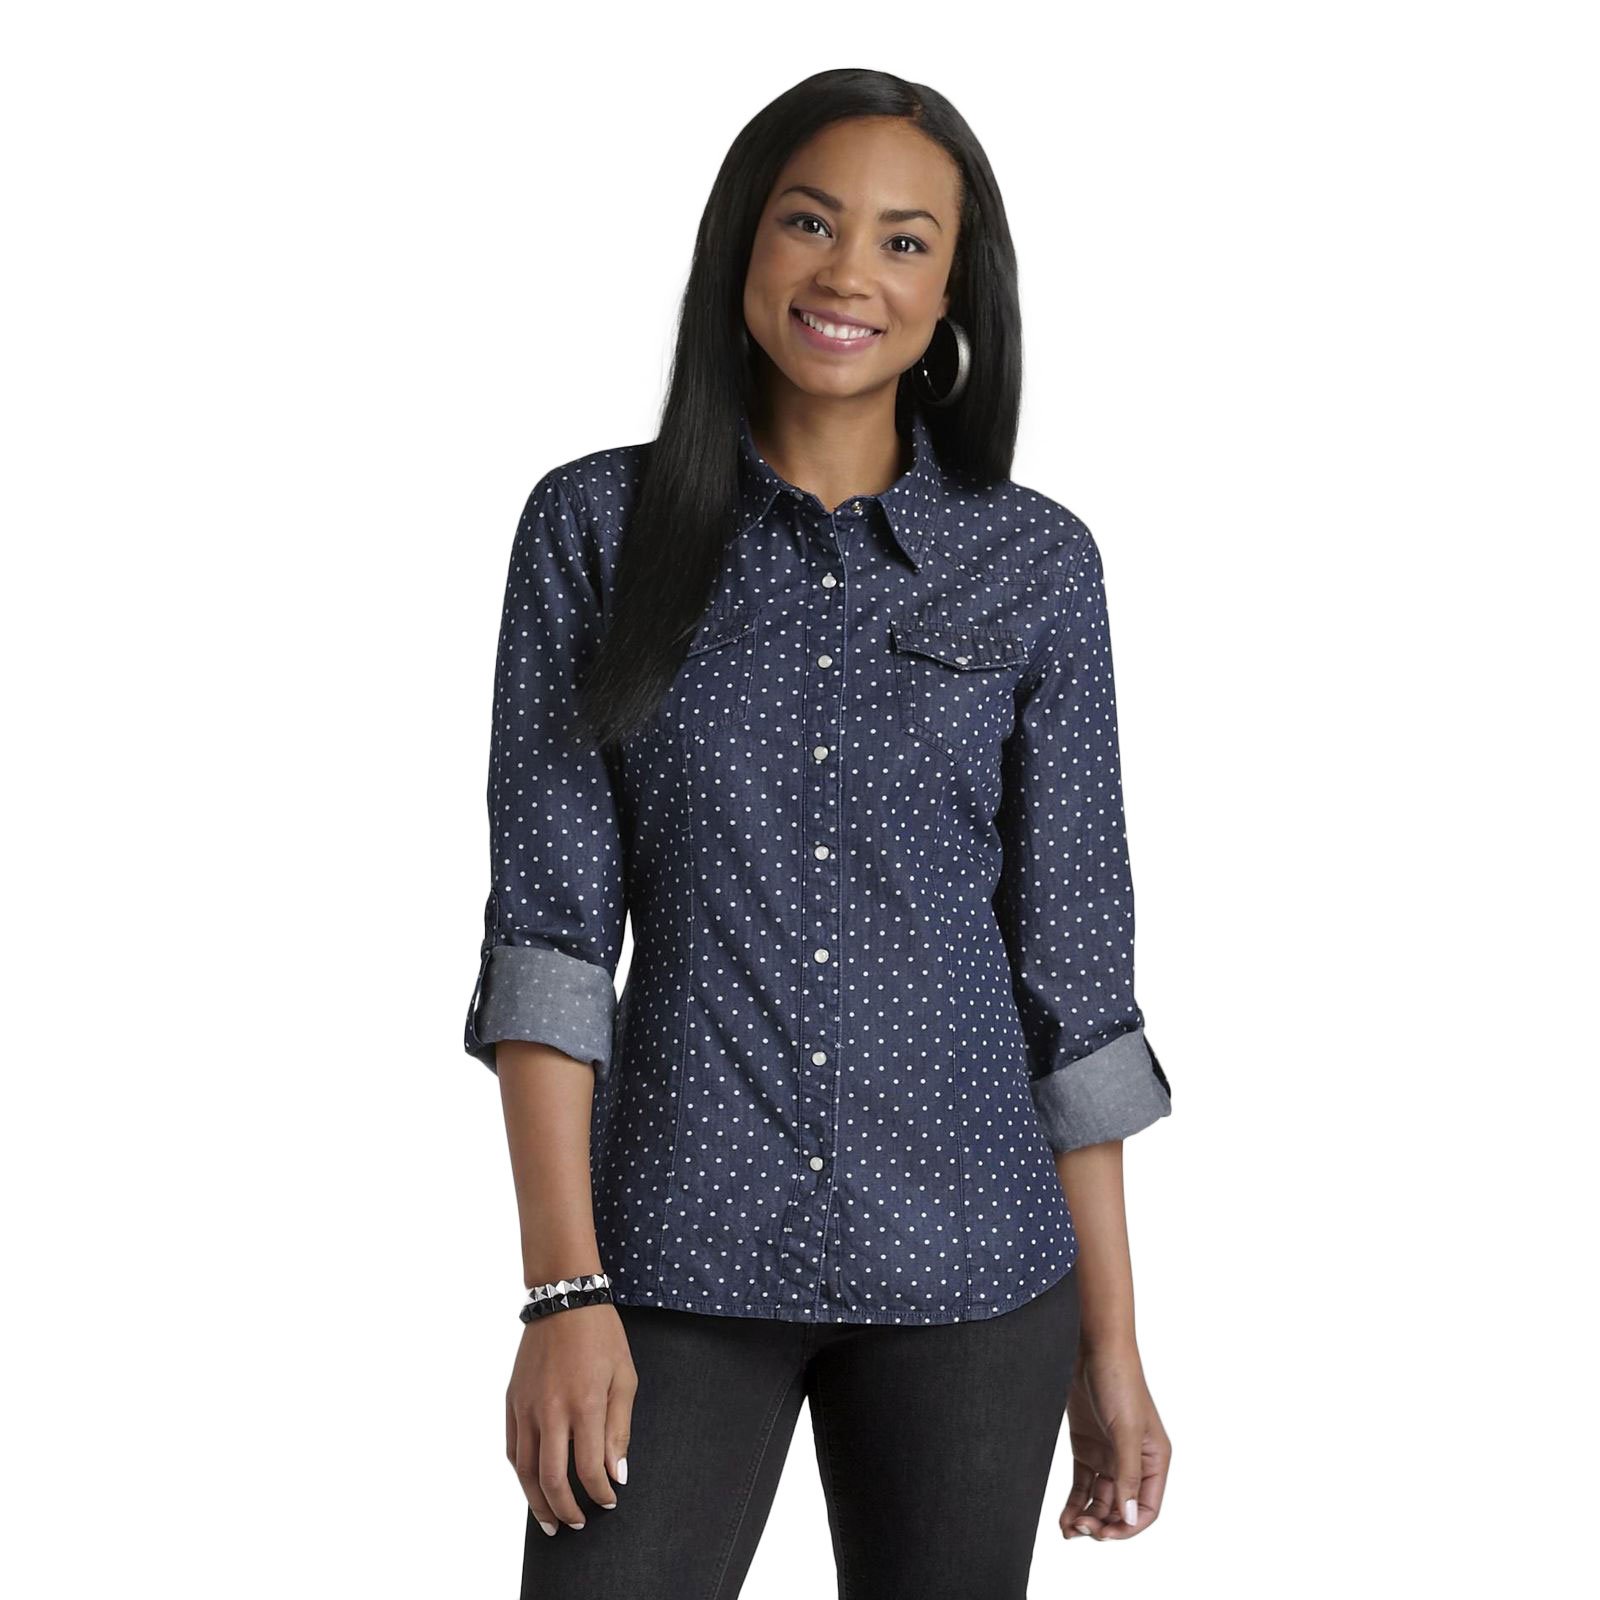 Women's Chambray Camp Shirt - Polka Dot